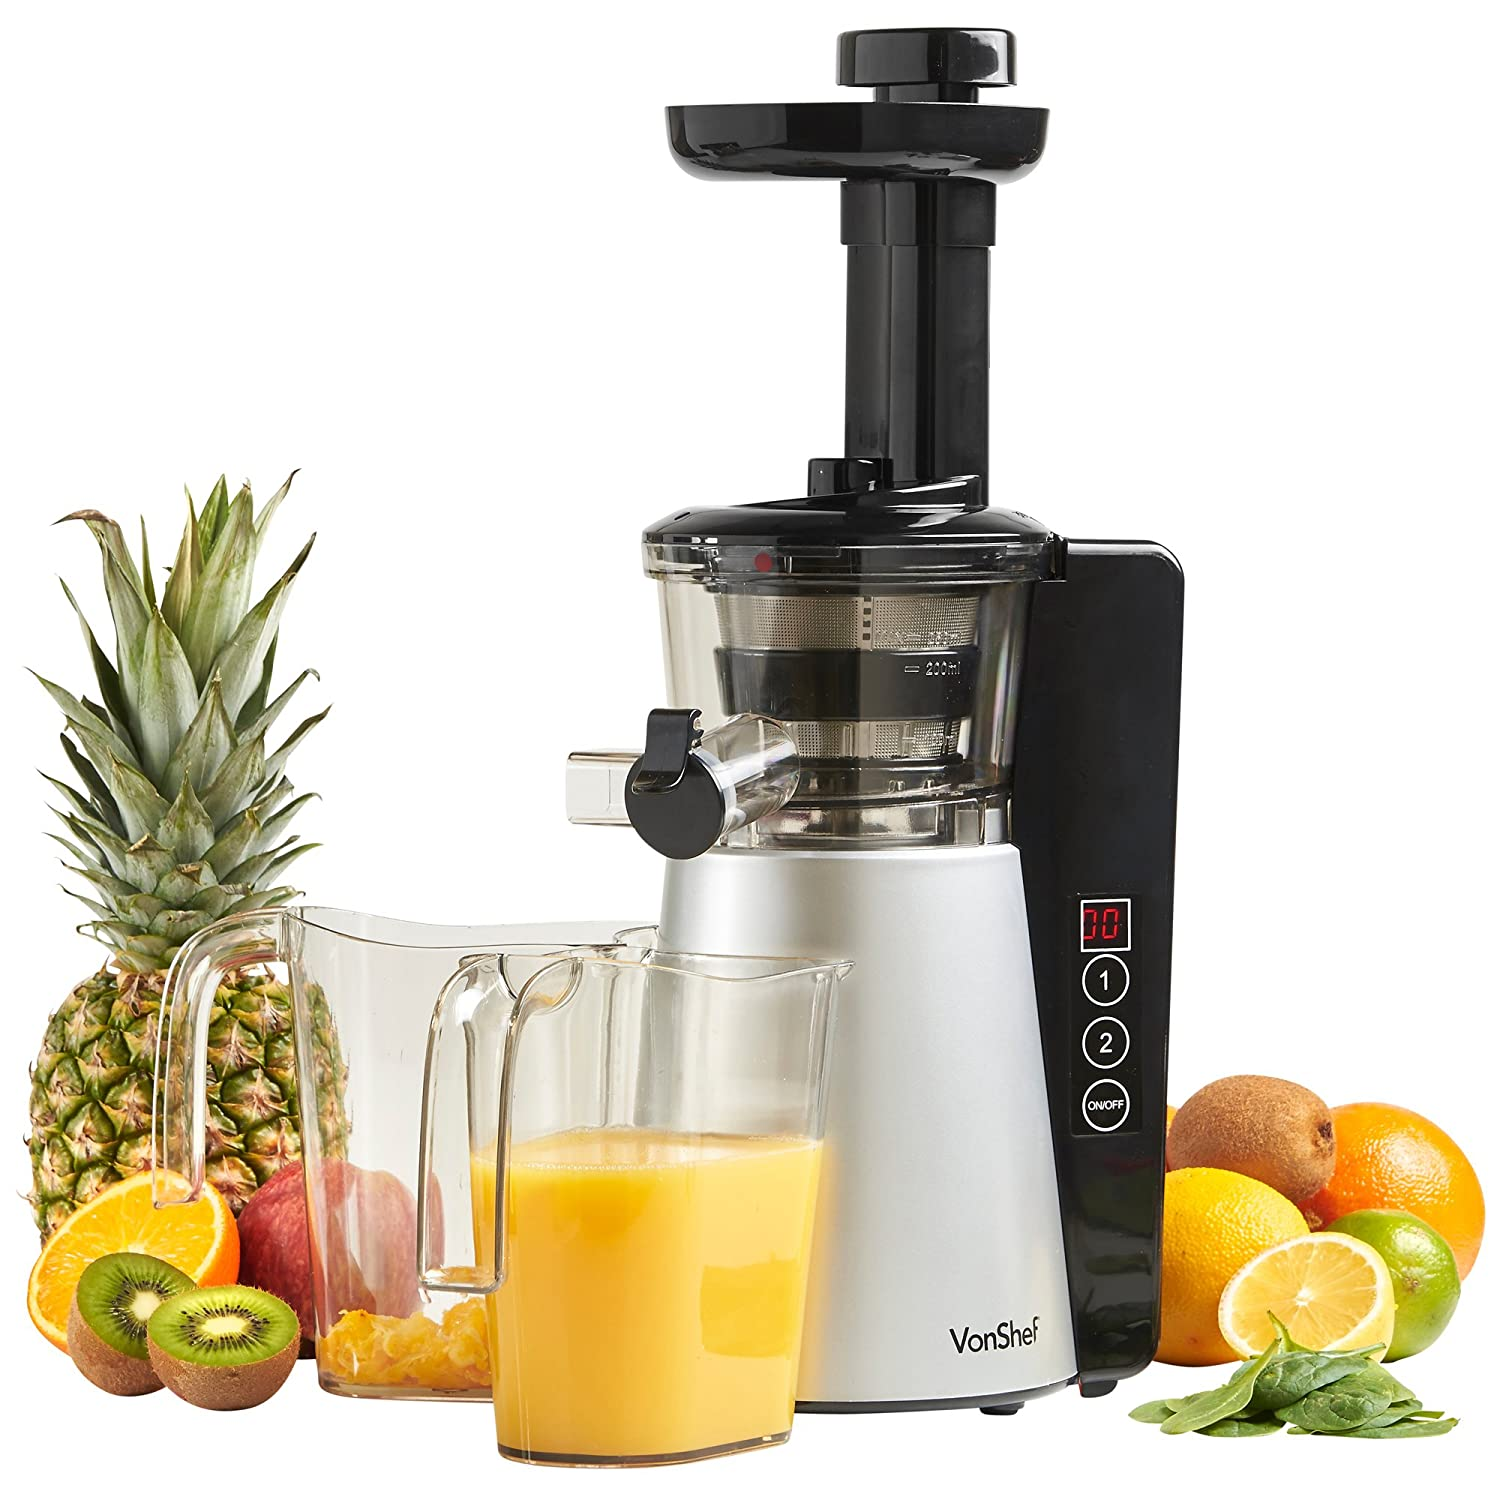 Omega j8006 nutrition center commercial masticating juicer - Vonshef Digital Slow Masticating Juicer Machine With 2 Speeds Reverse Function Quiet Motor